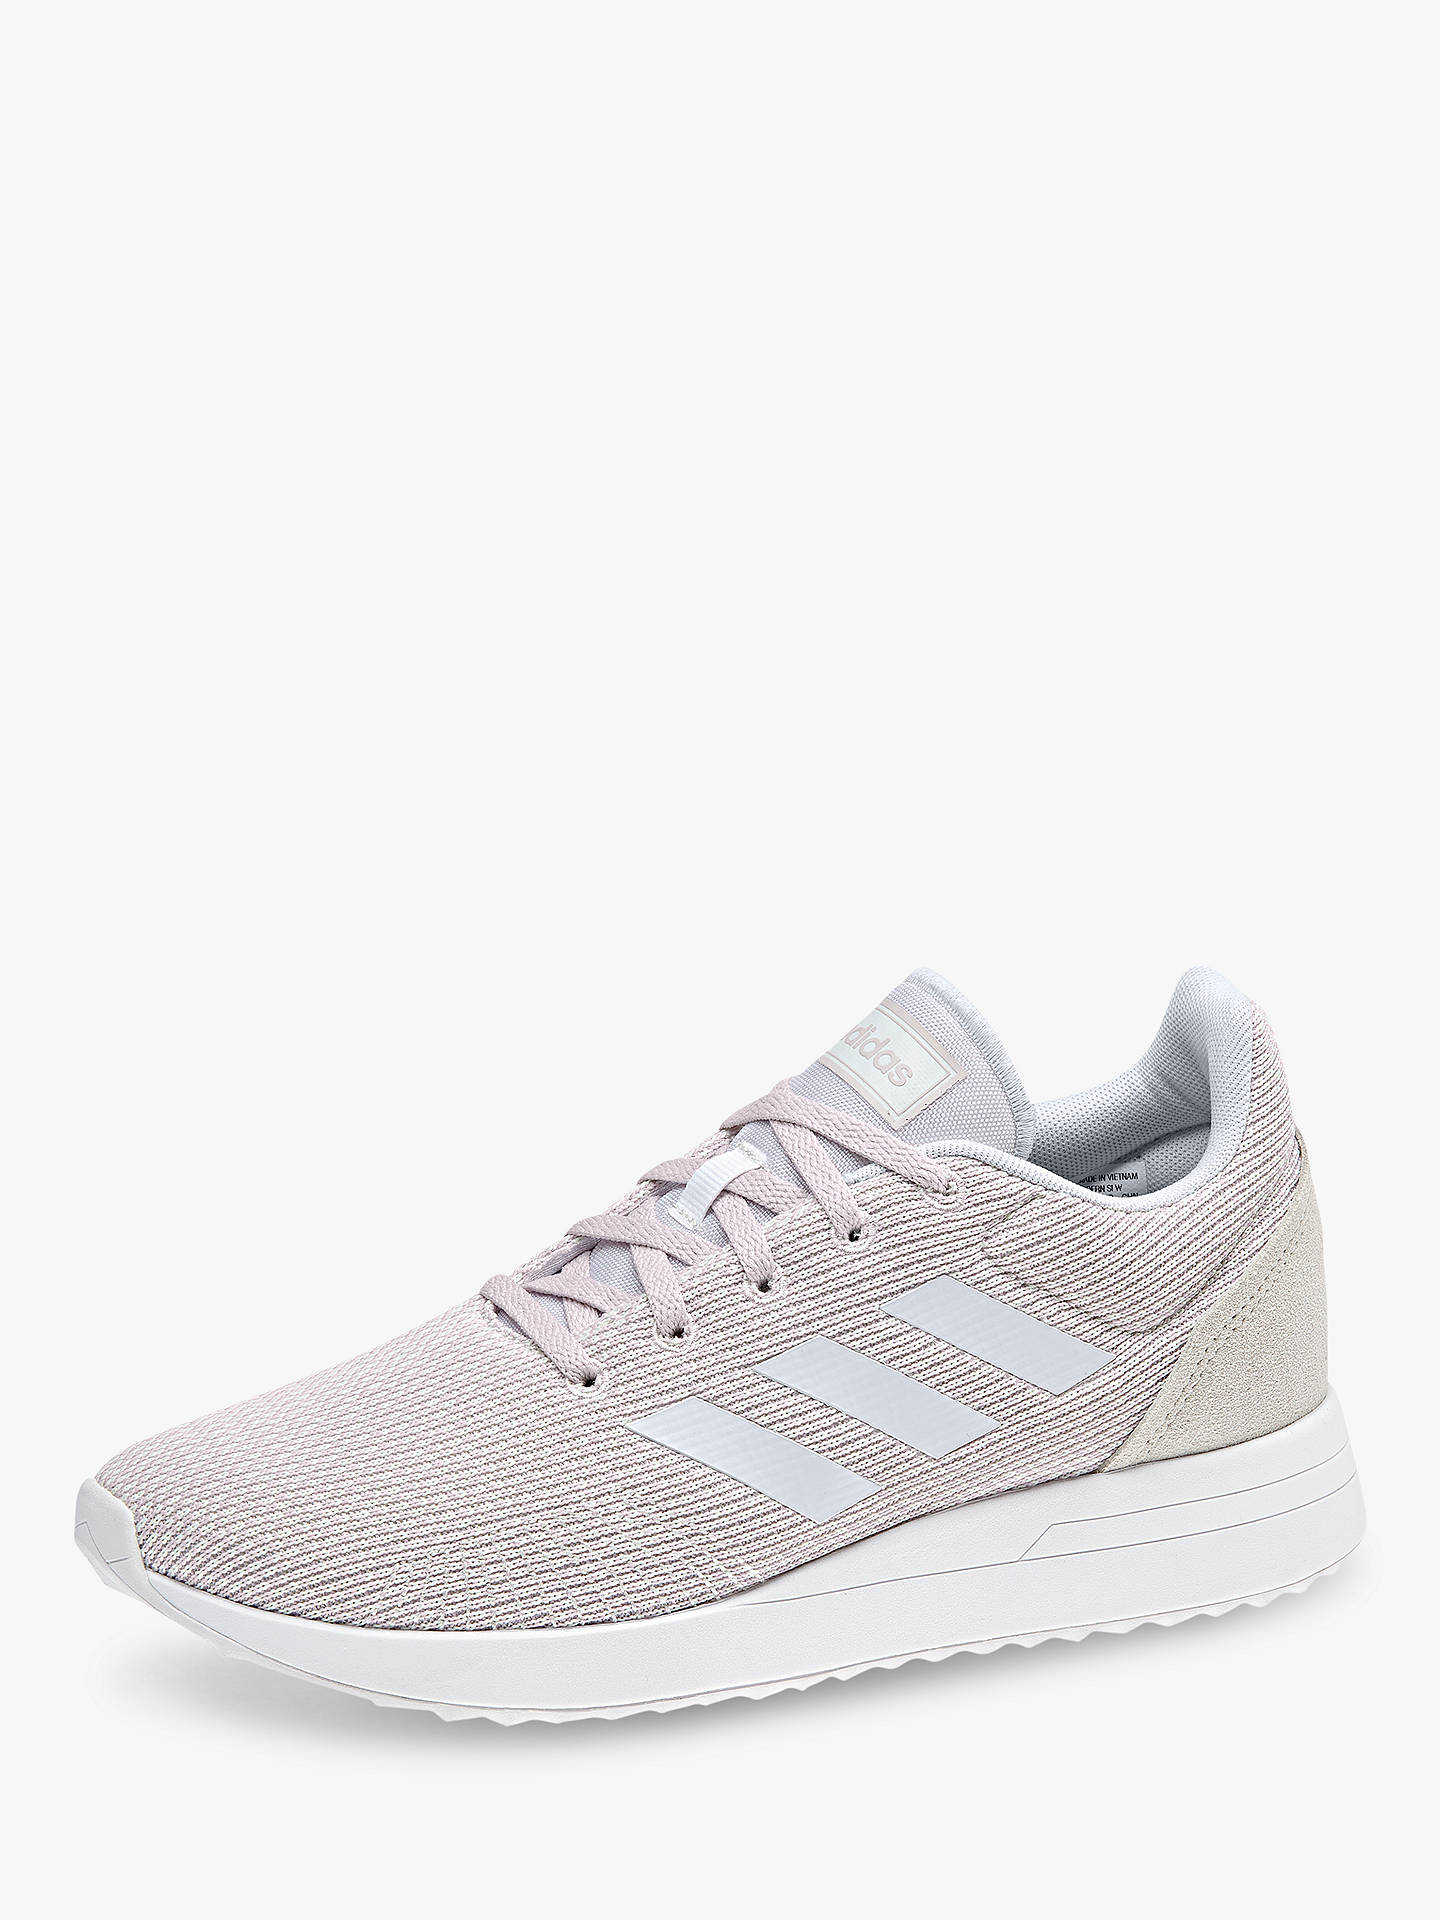 promo code c525d 43d7b ... Buy adidas Run 70s Women s Trainers, Crystal White, 4 Online at  johnlewis. ...